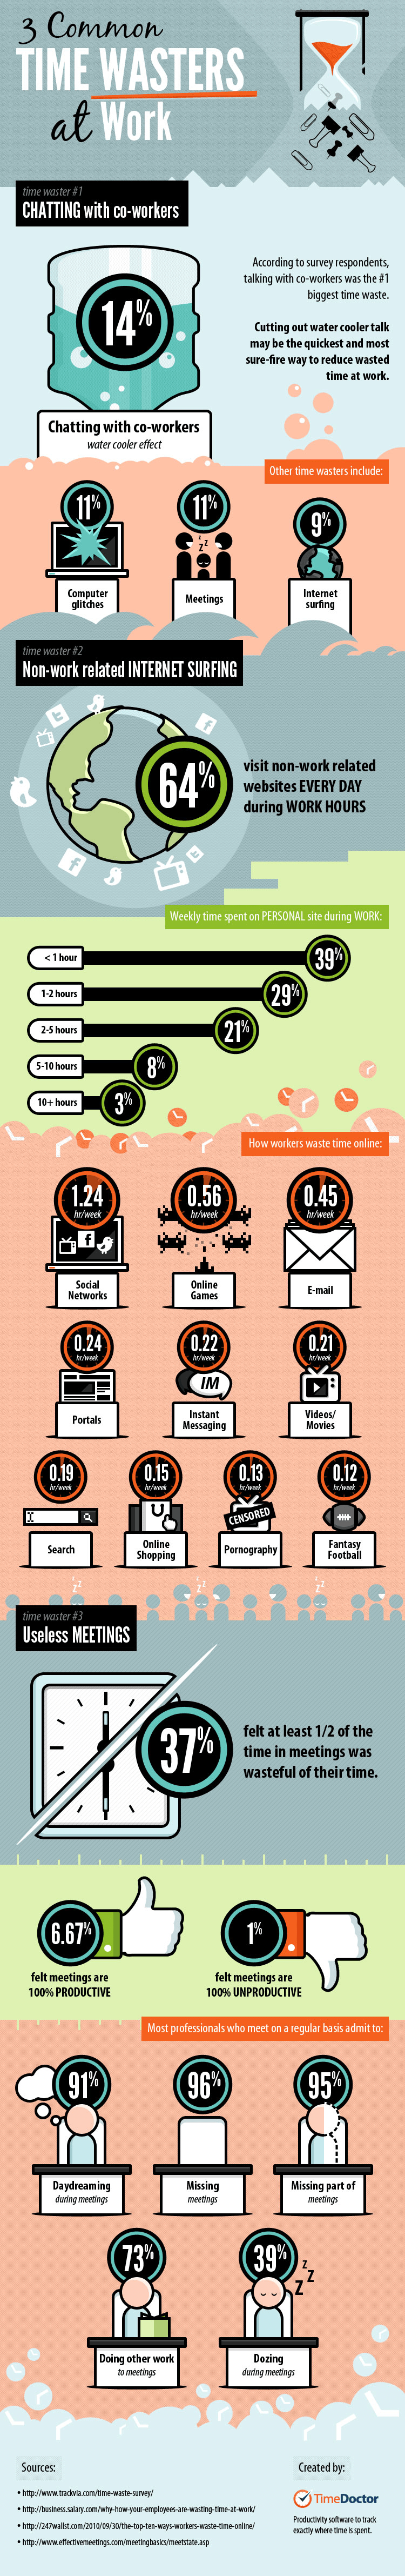 The 3 Common Time Wasters at Work – #Infographic